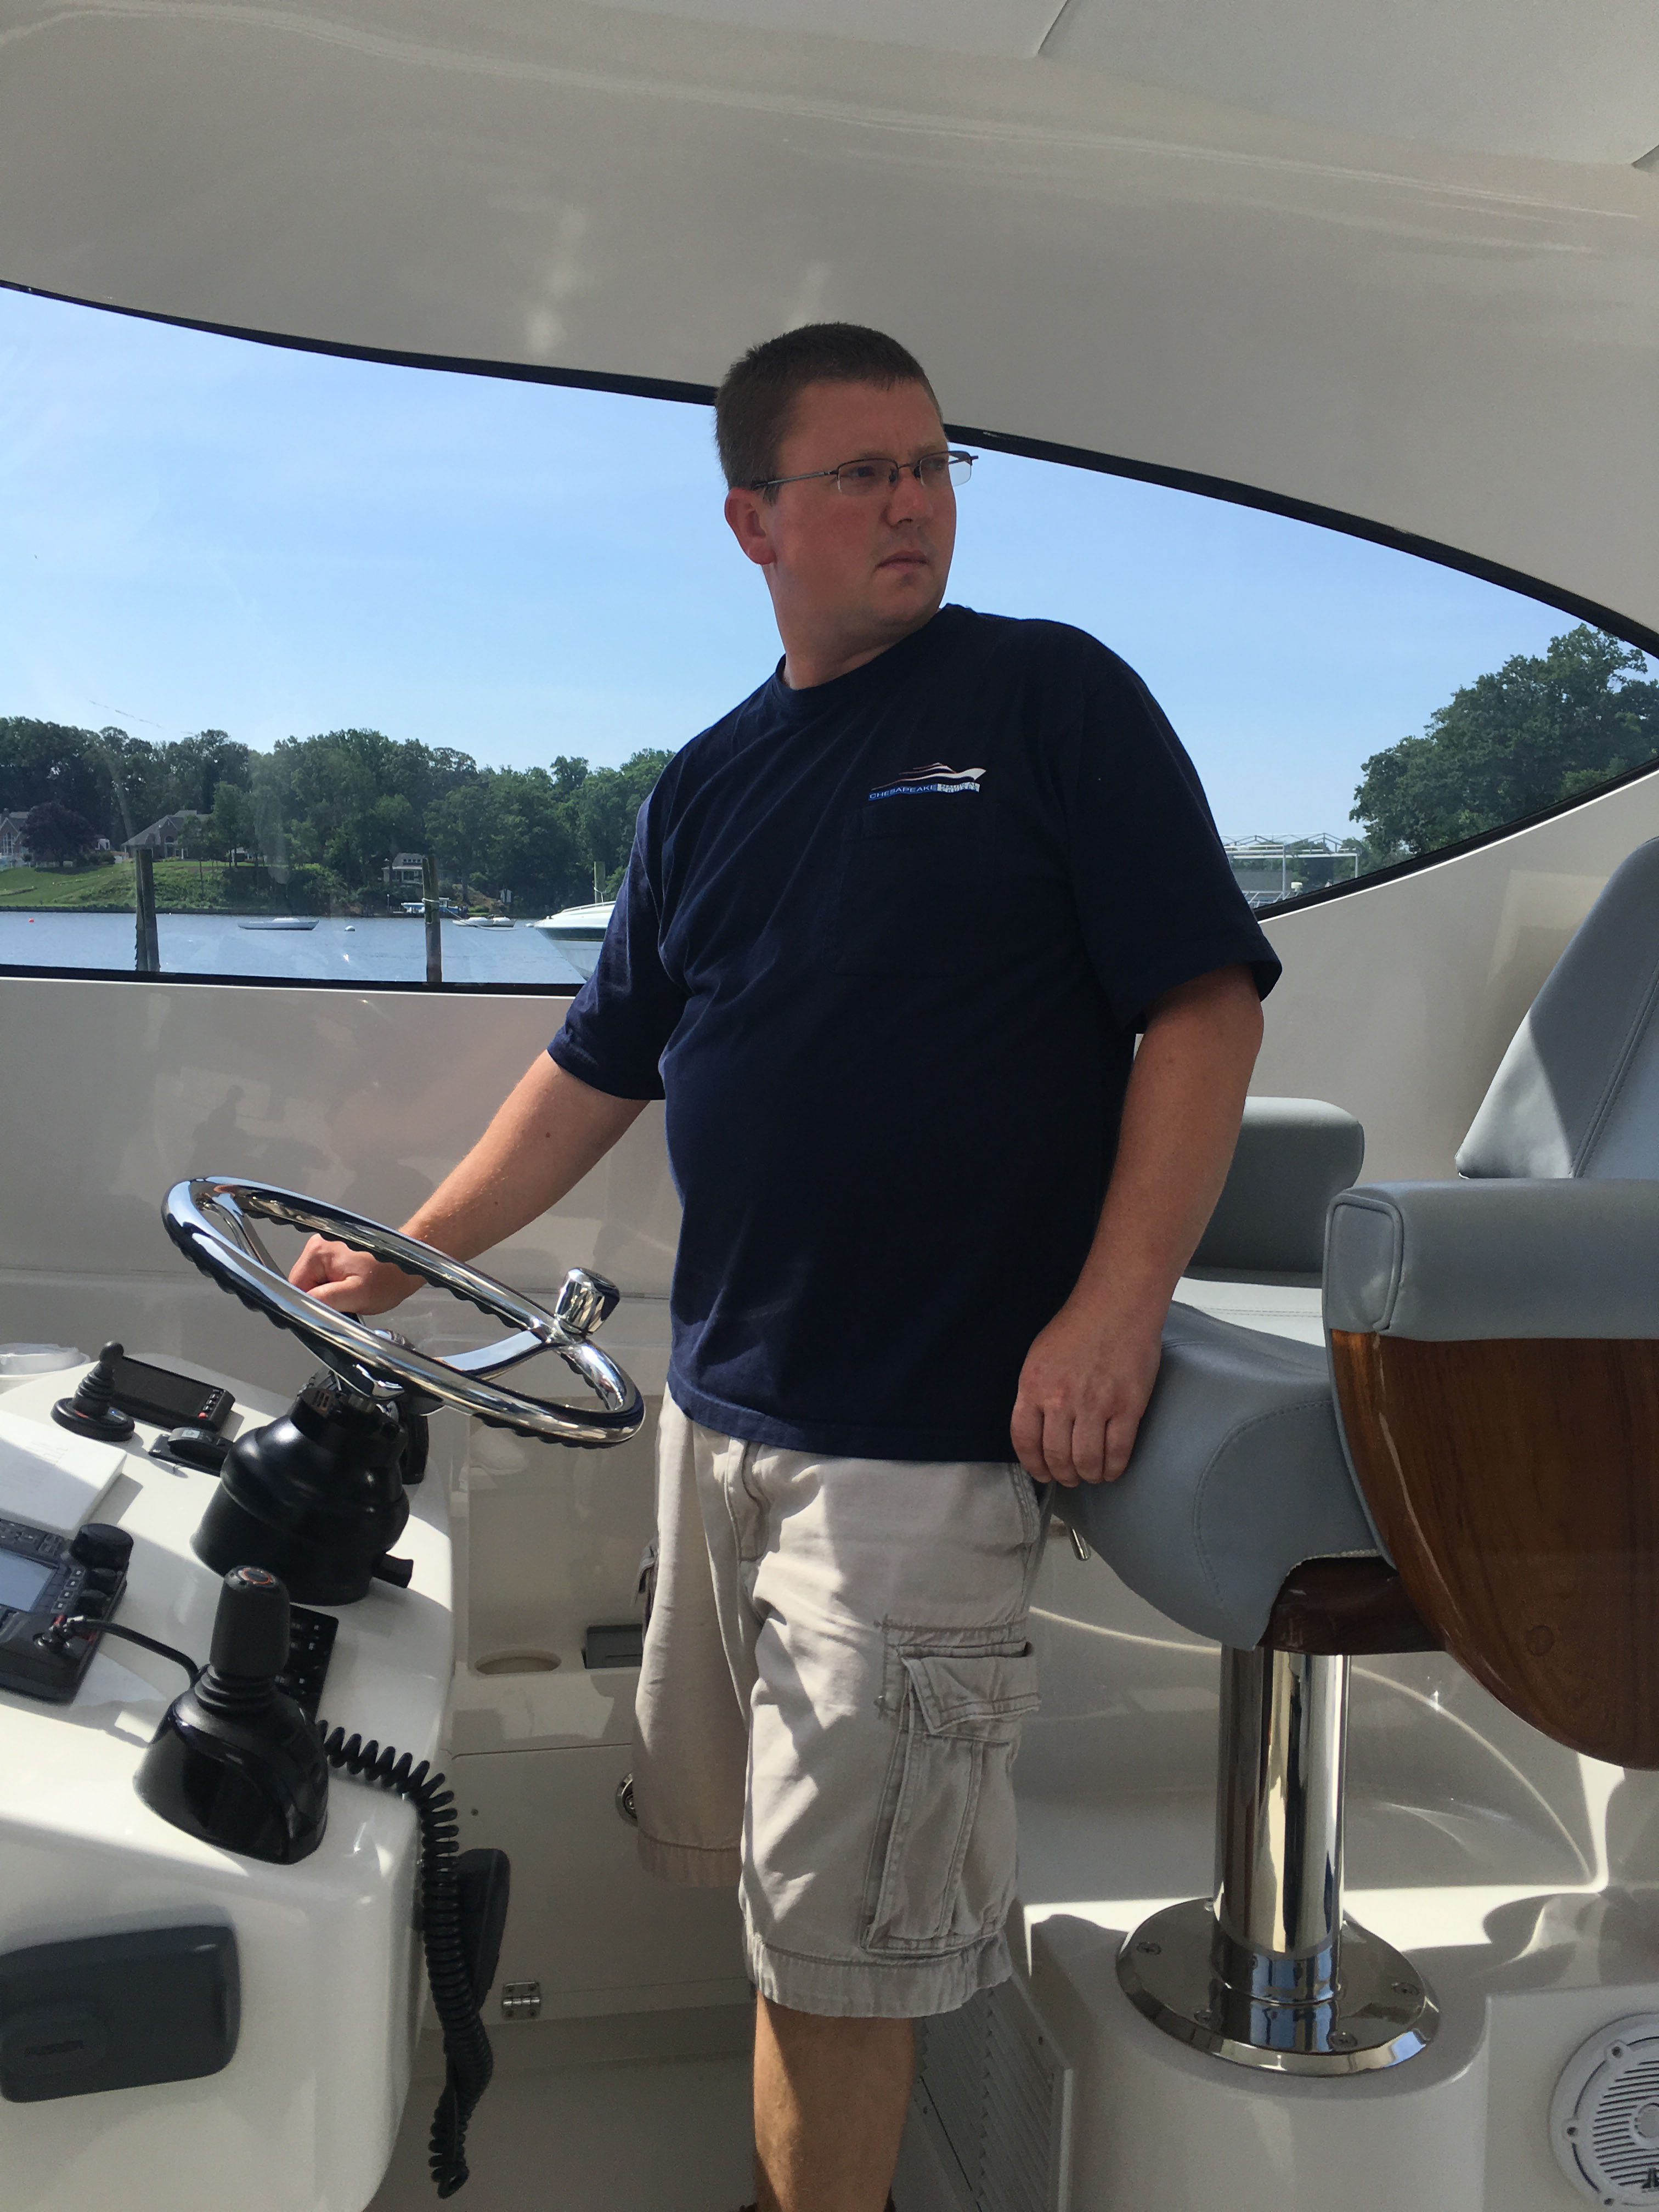 Captain Steve at the helm